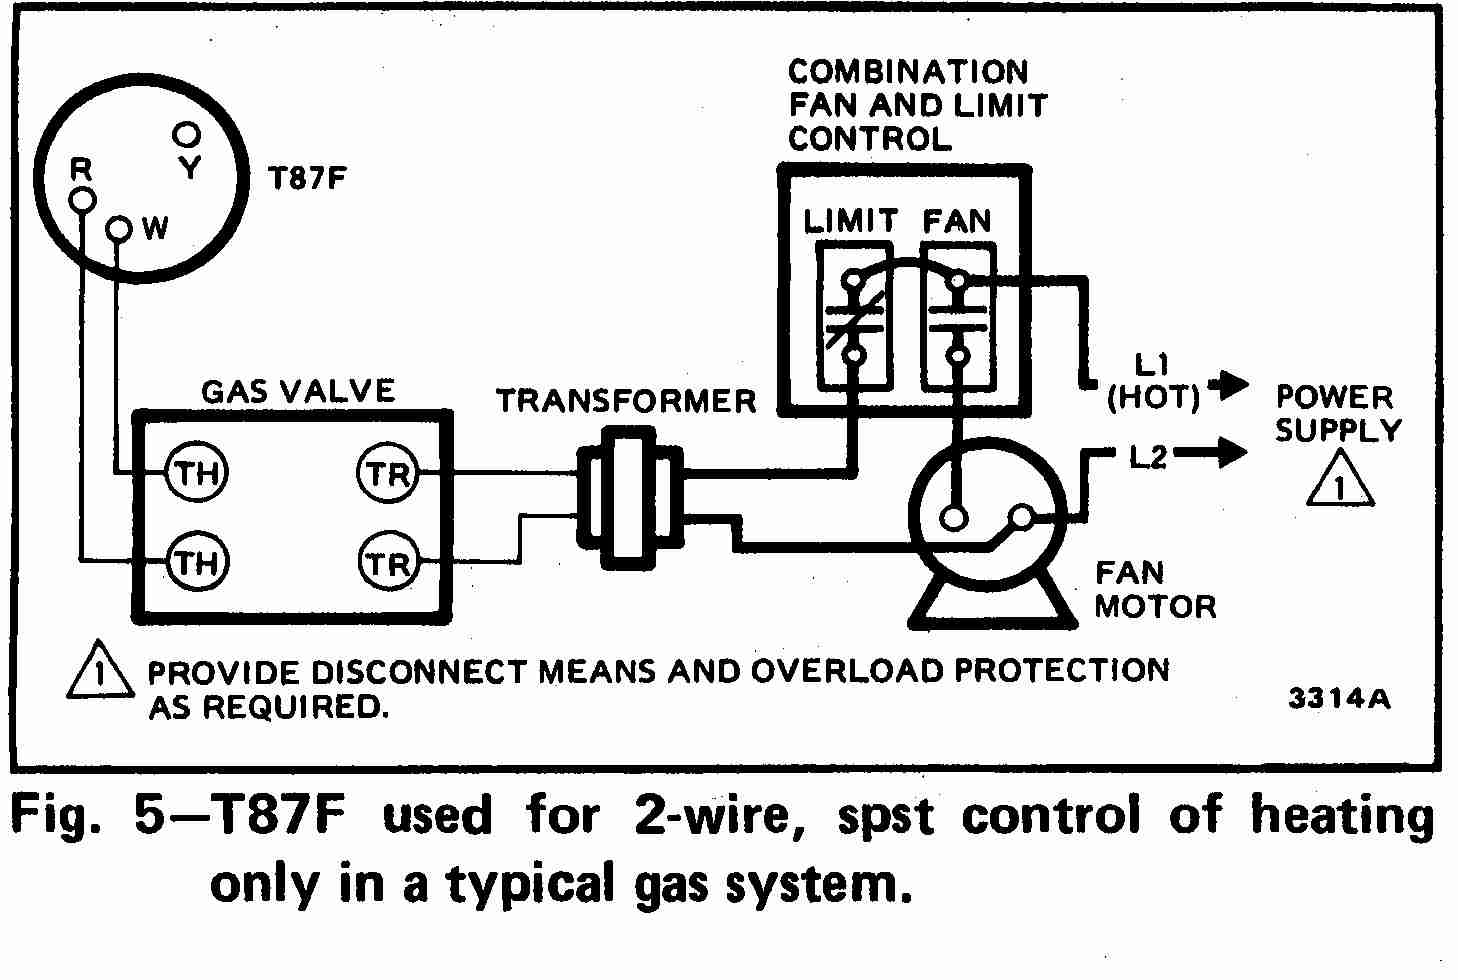 room thermostat wiring diagrams for hvac systems rh inspectapedia com Basic Thermostat Wiring Thermostat Wiring Color Code